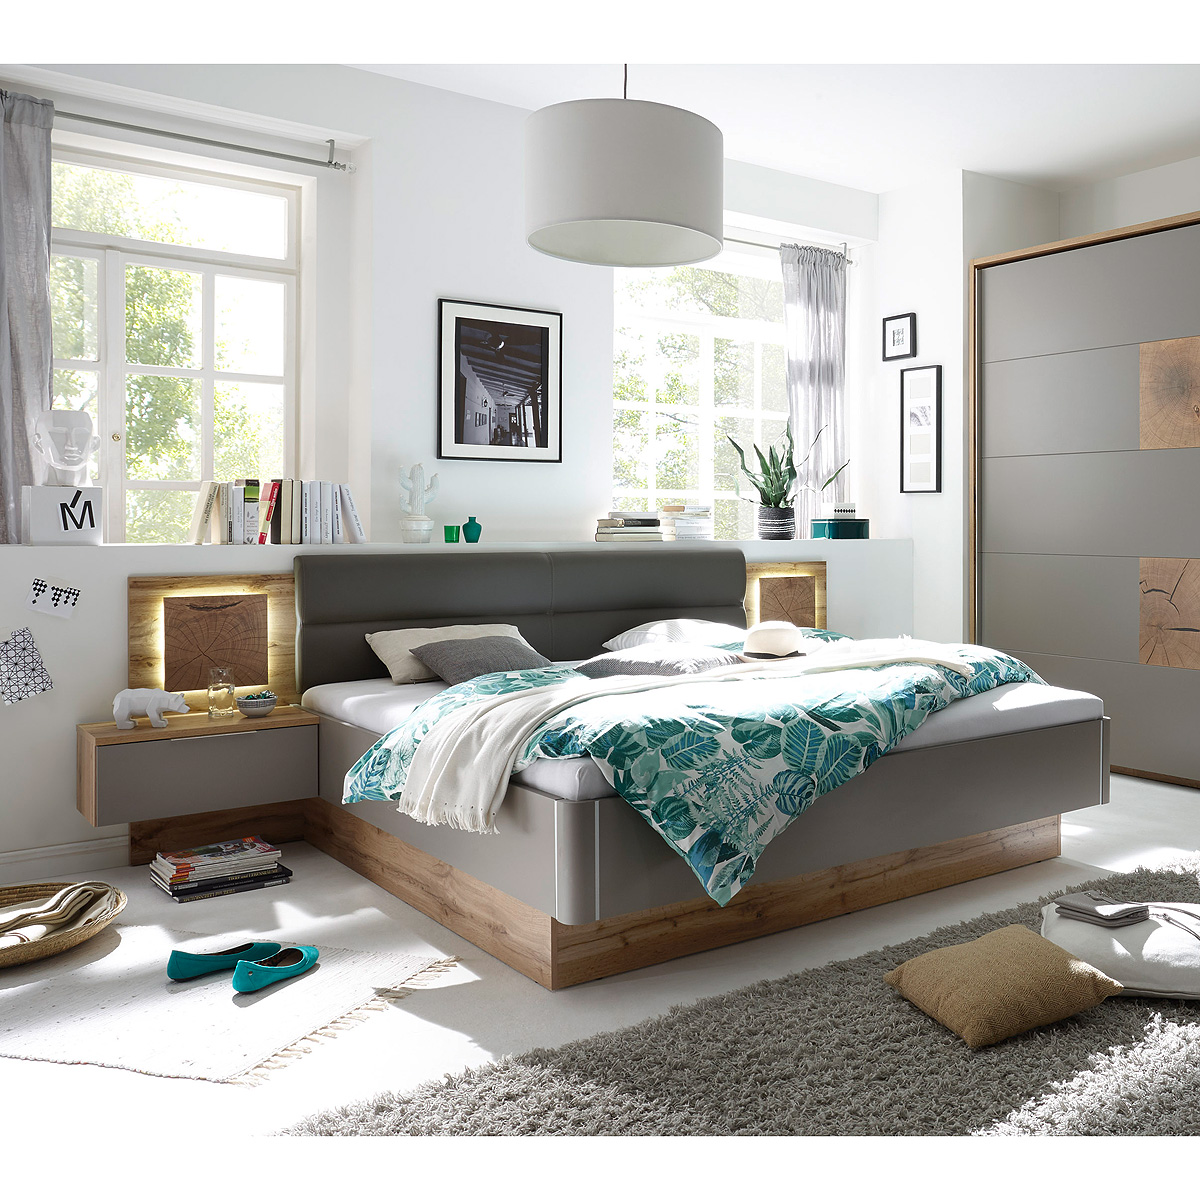 bettanlage capri bett nako in wildeiche basalgrau hirnholz taupe mit led 180x200 ebay. Black Bedroom Furniture Sets. Home Design Ideas